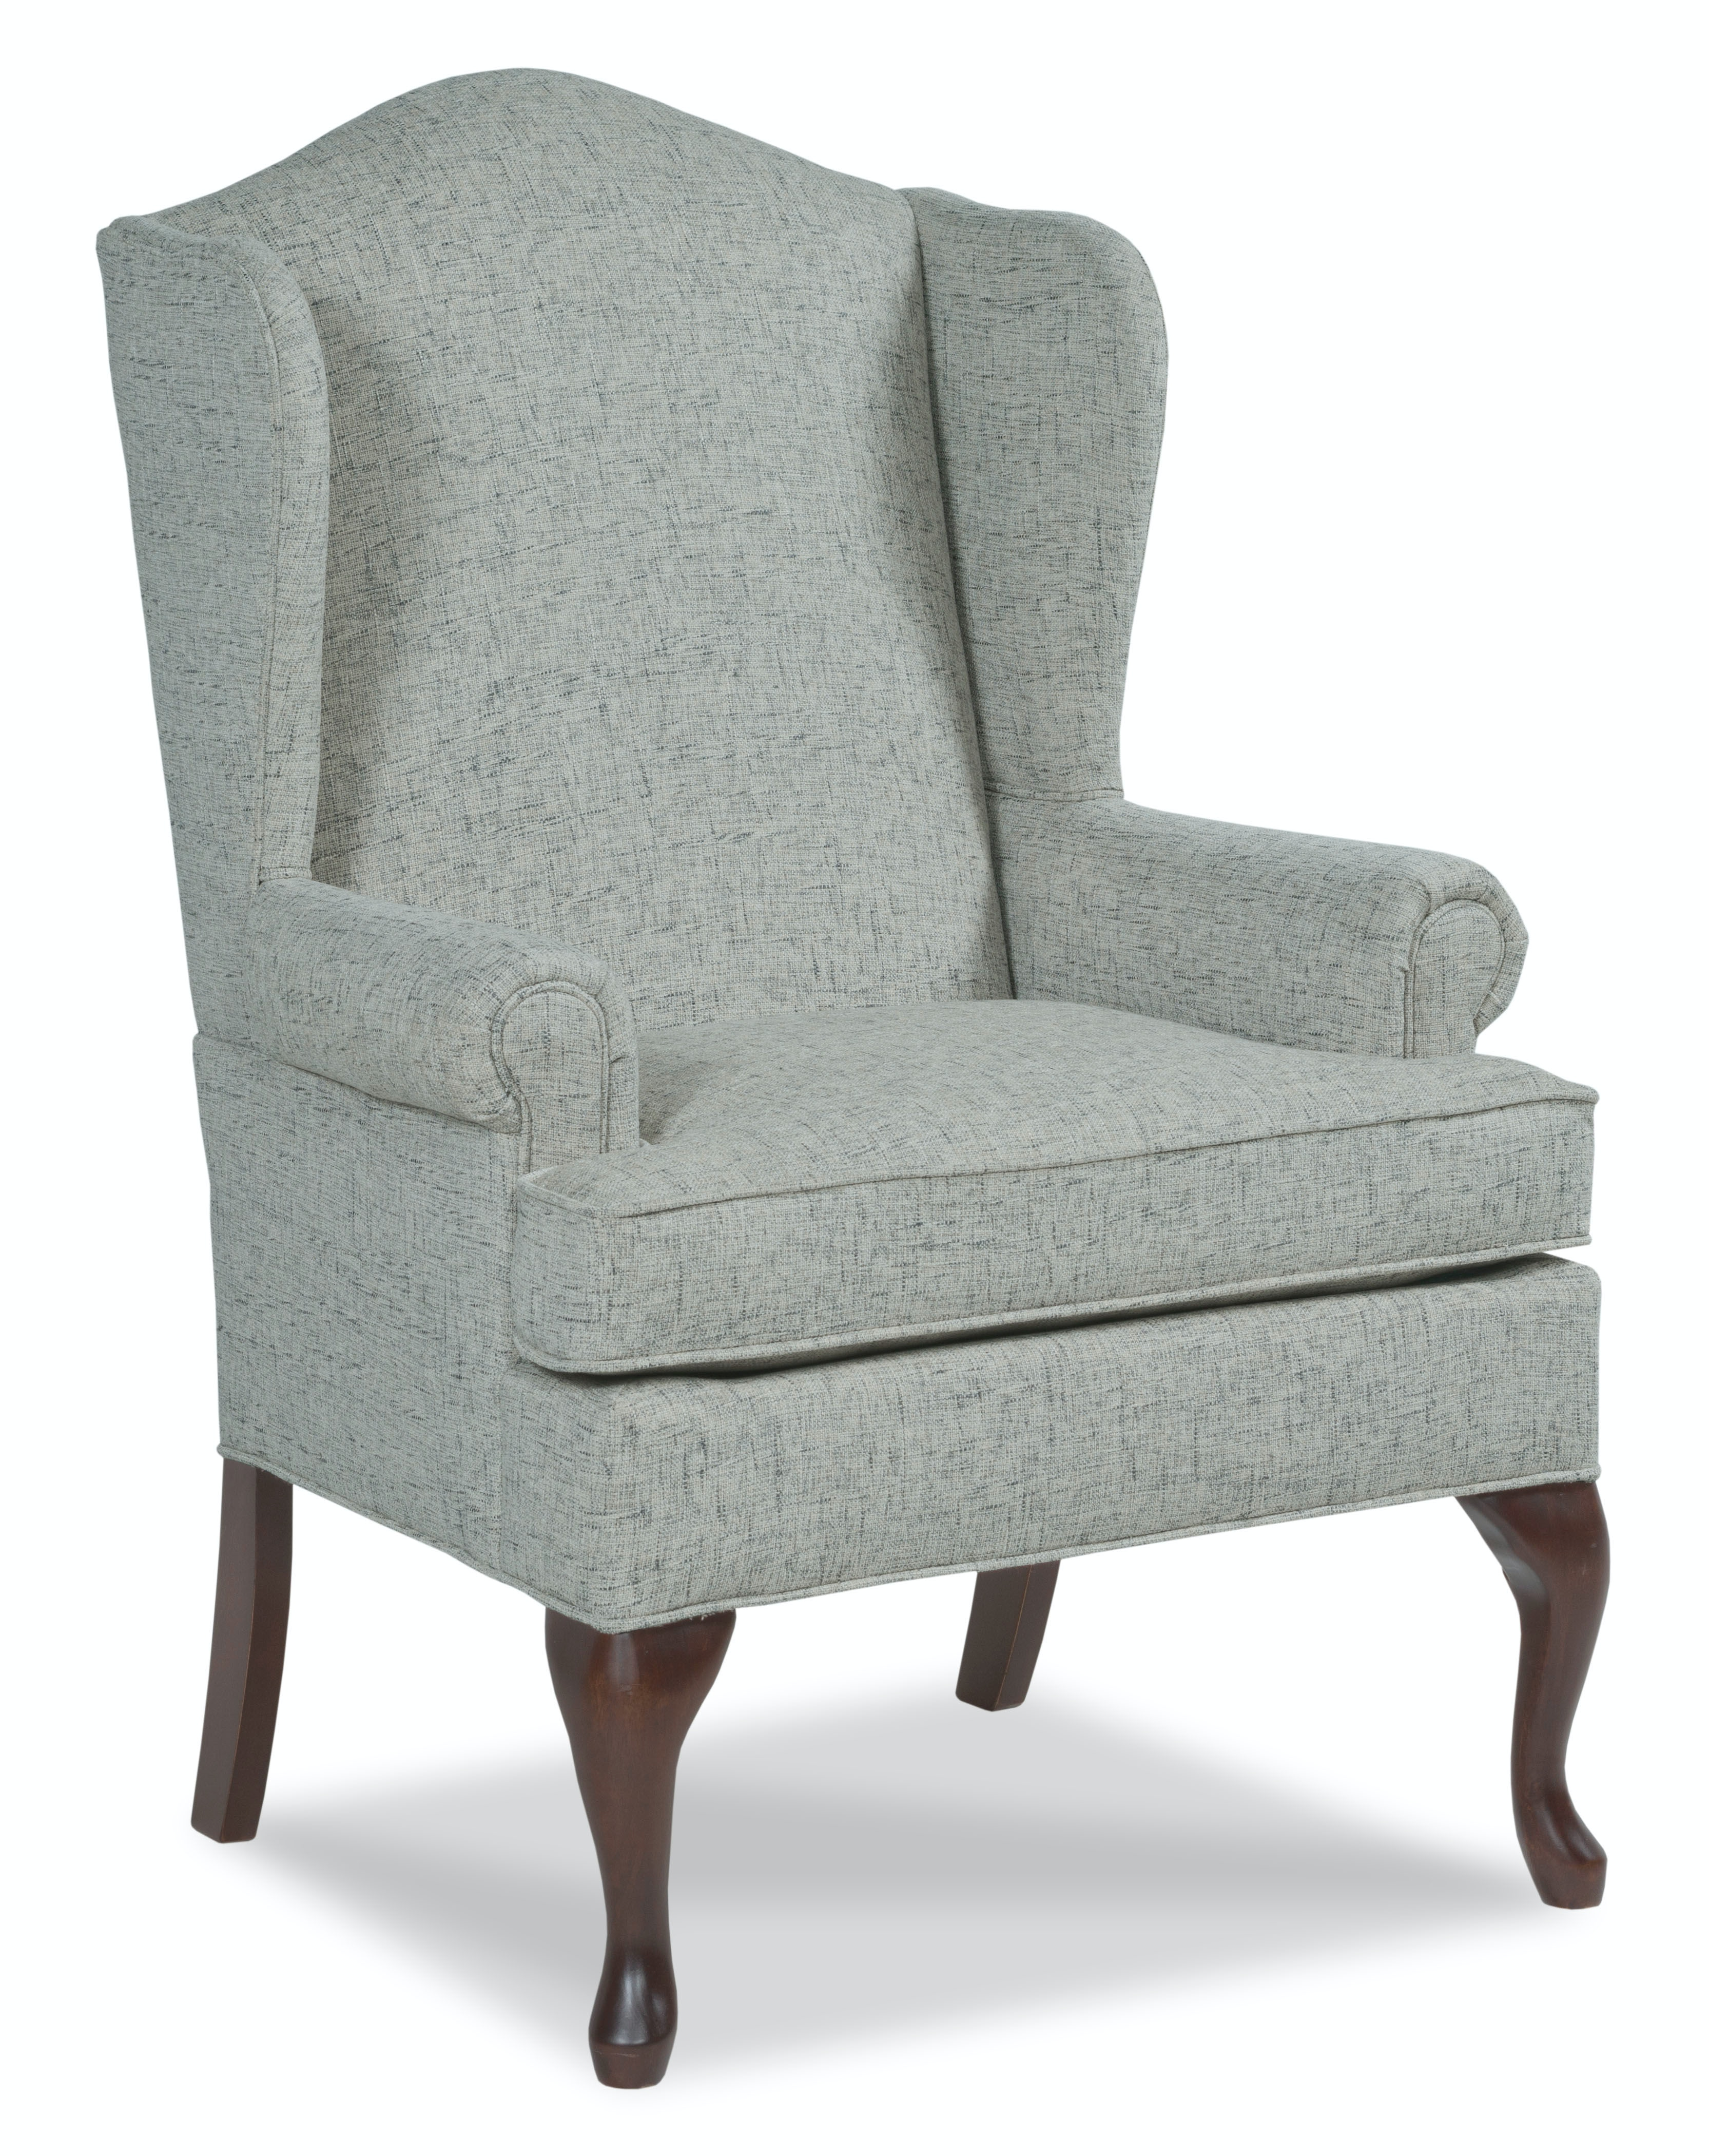 queen anne wingback chair leather folding home depot fairfield company living room bowman wing 5118 01 at hamilton sofa gallery